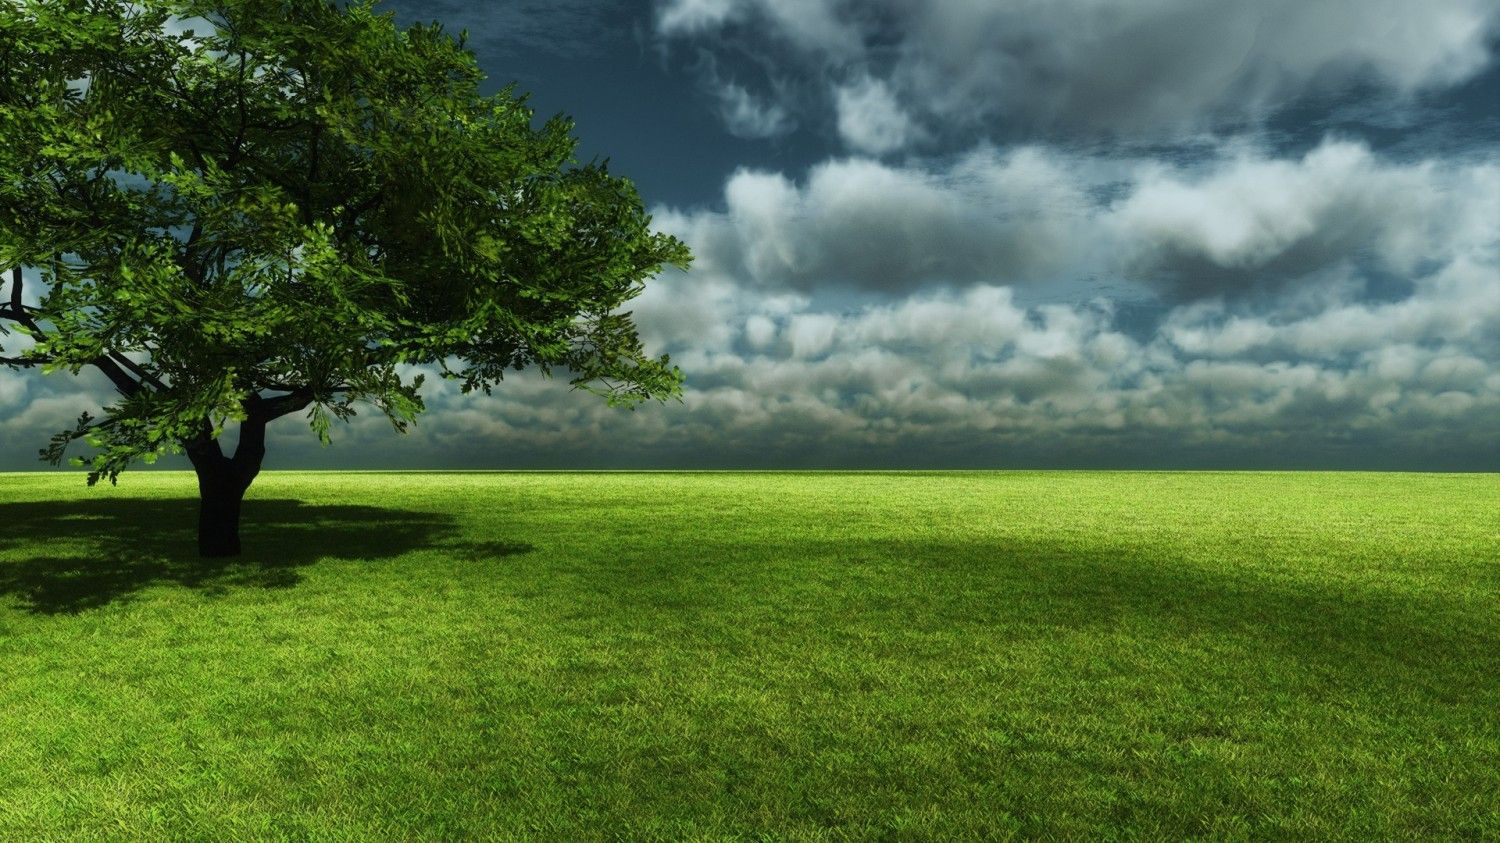 3d Nature Tree Wallpapers Hd Wallpaper Landscape Wallpaper Beautiful Landscapes Landscape